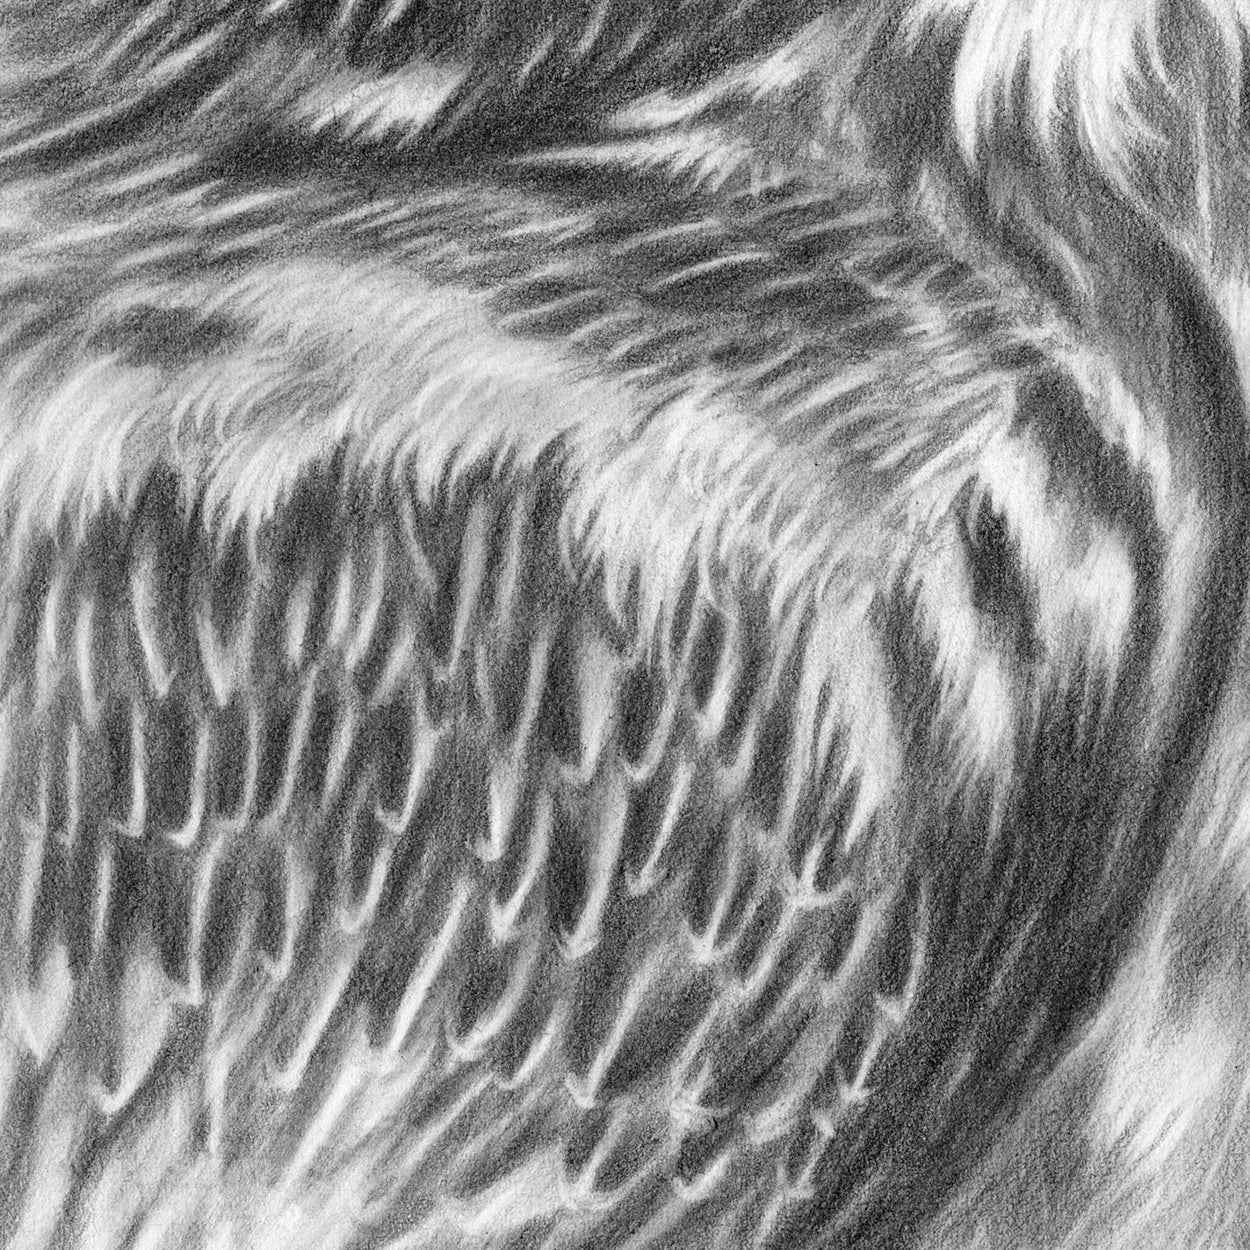 Bearded Vulture Drawing Close-up 4 - The Thriving Wild - Jill Dimond